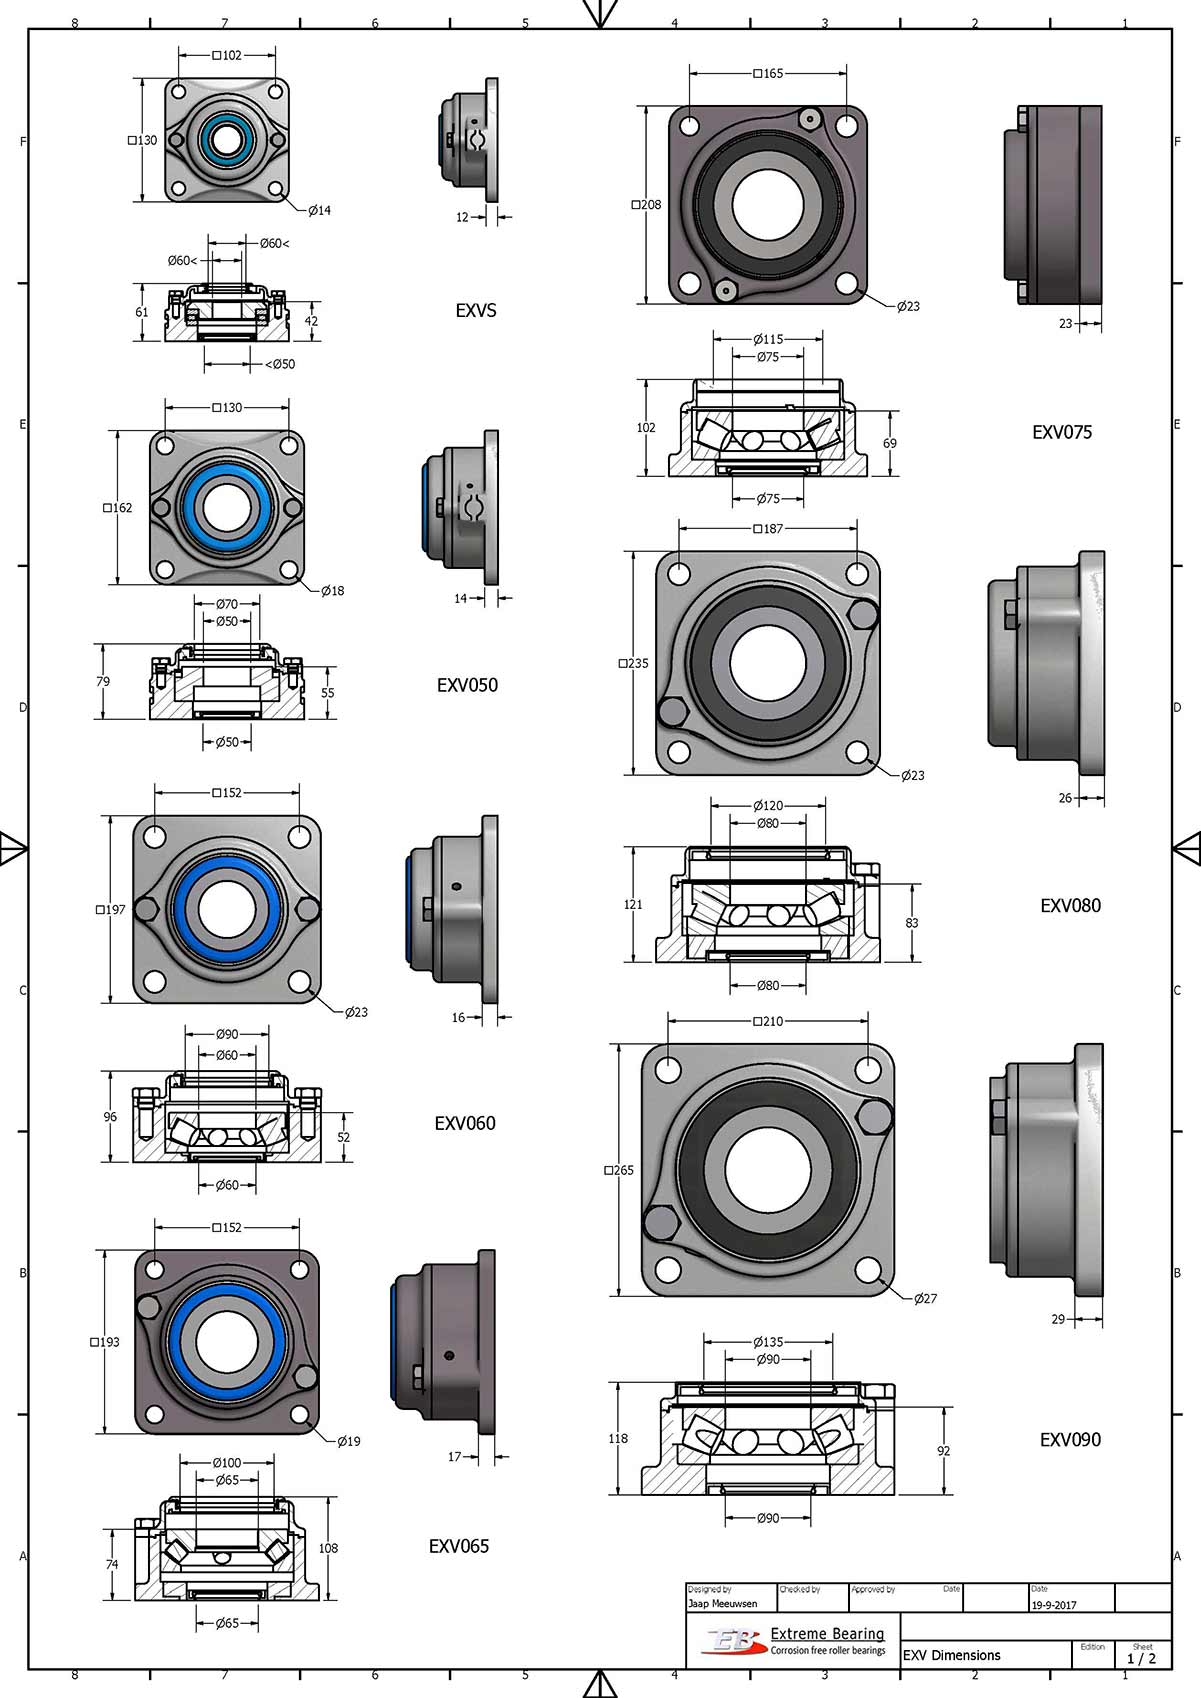 Bearing units made of material stainless steel 316 used for huge vertical loads